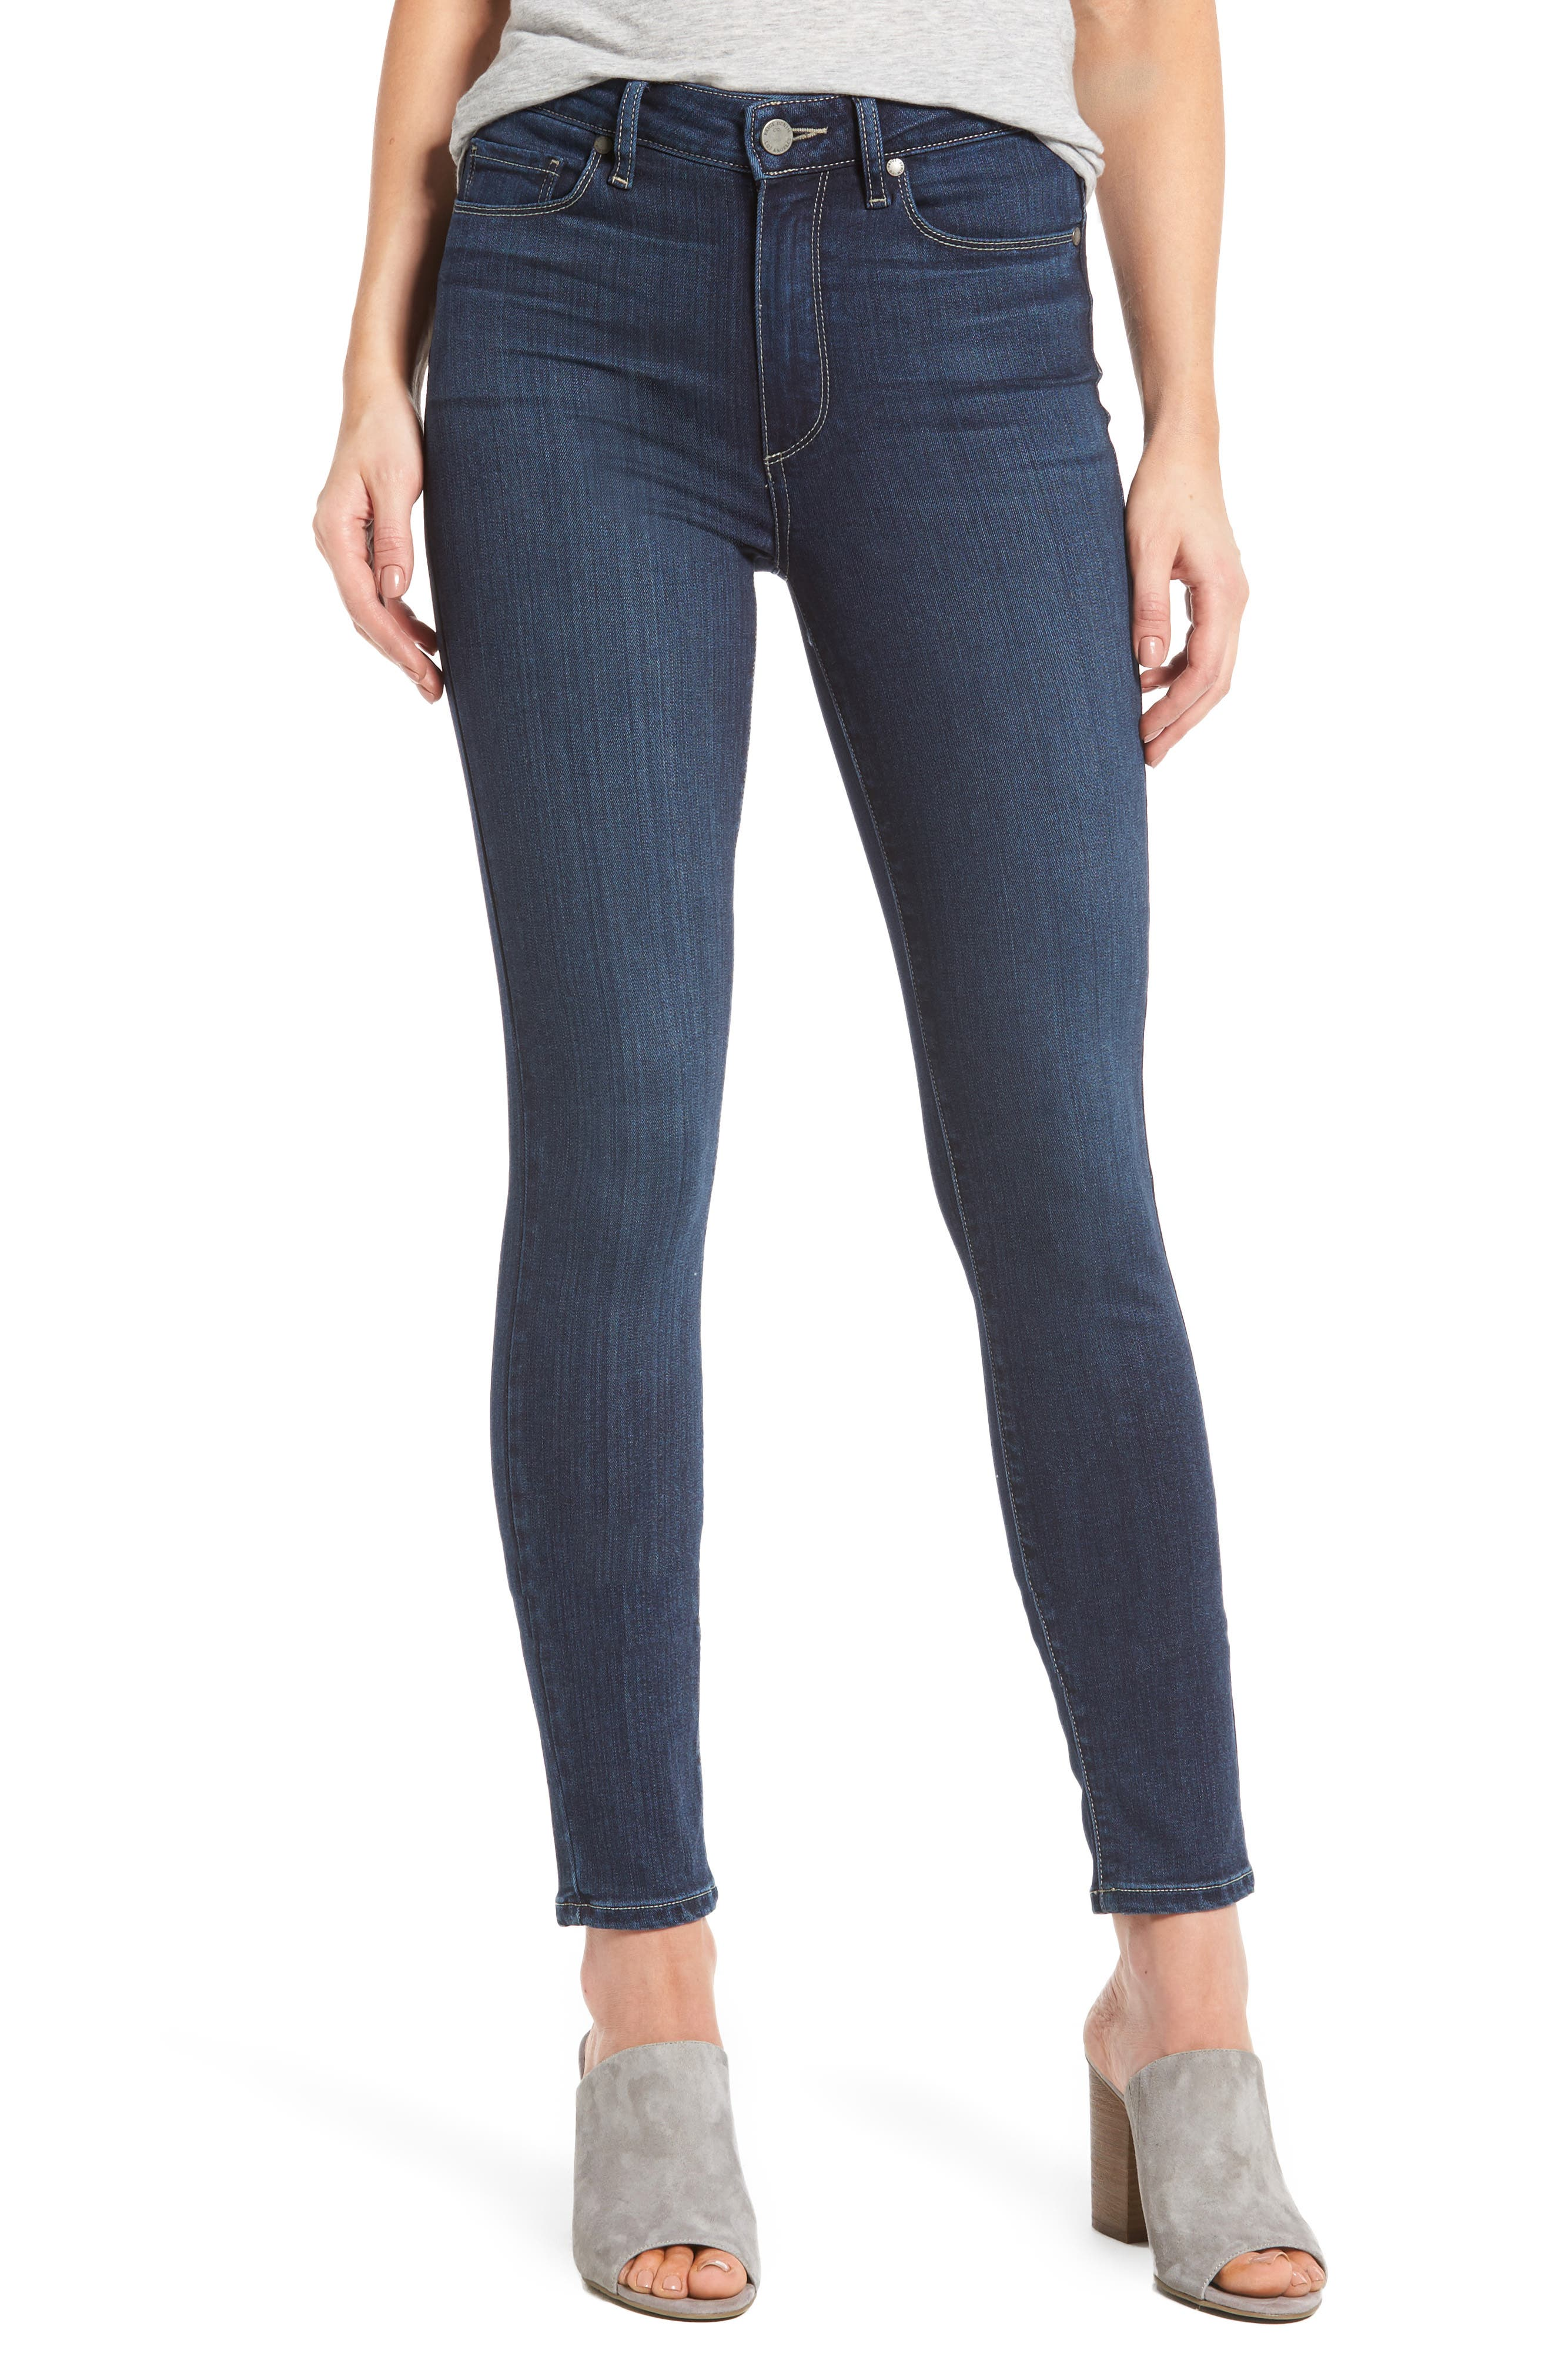 Transcend - Hoxton High Waist Ankle Skinny Jeans,                             Main thumbnail 1, color,                             400